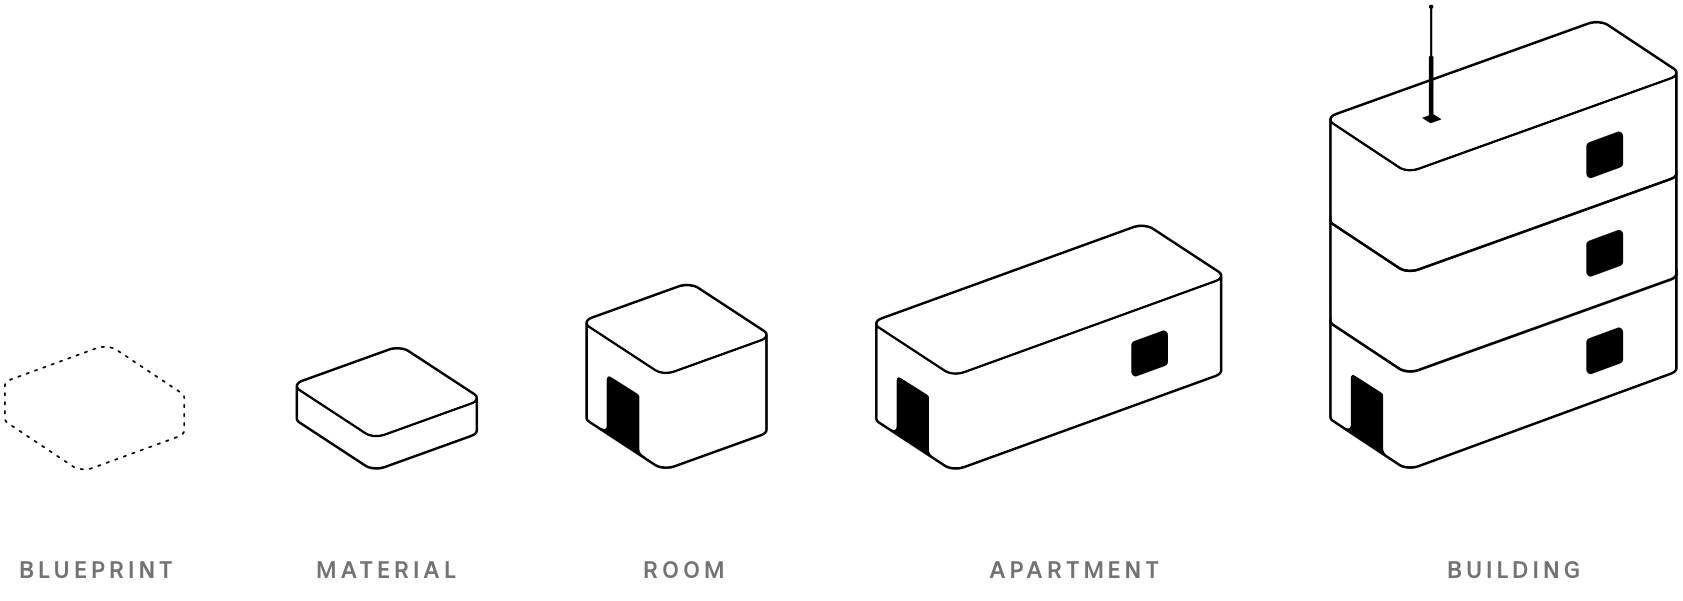 Five icons illustrating a composition analogy in terms of physical buildings.